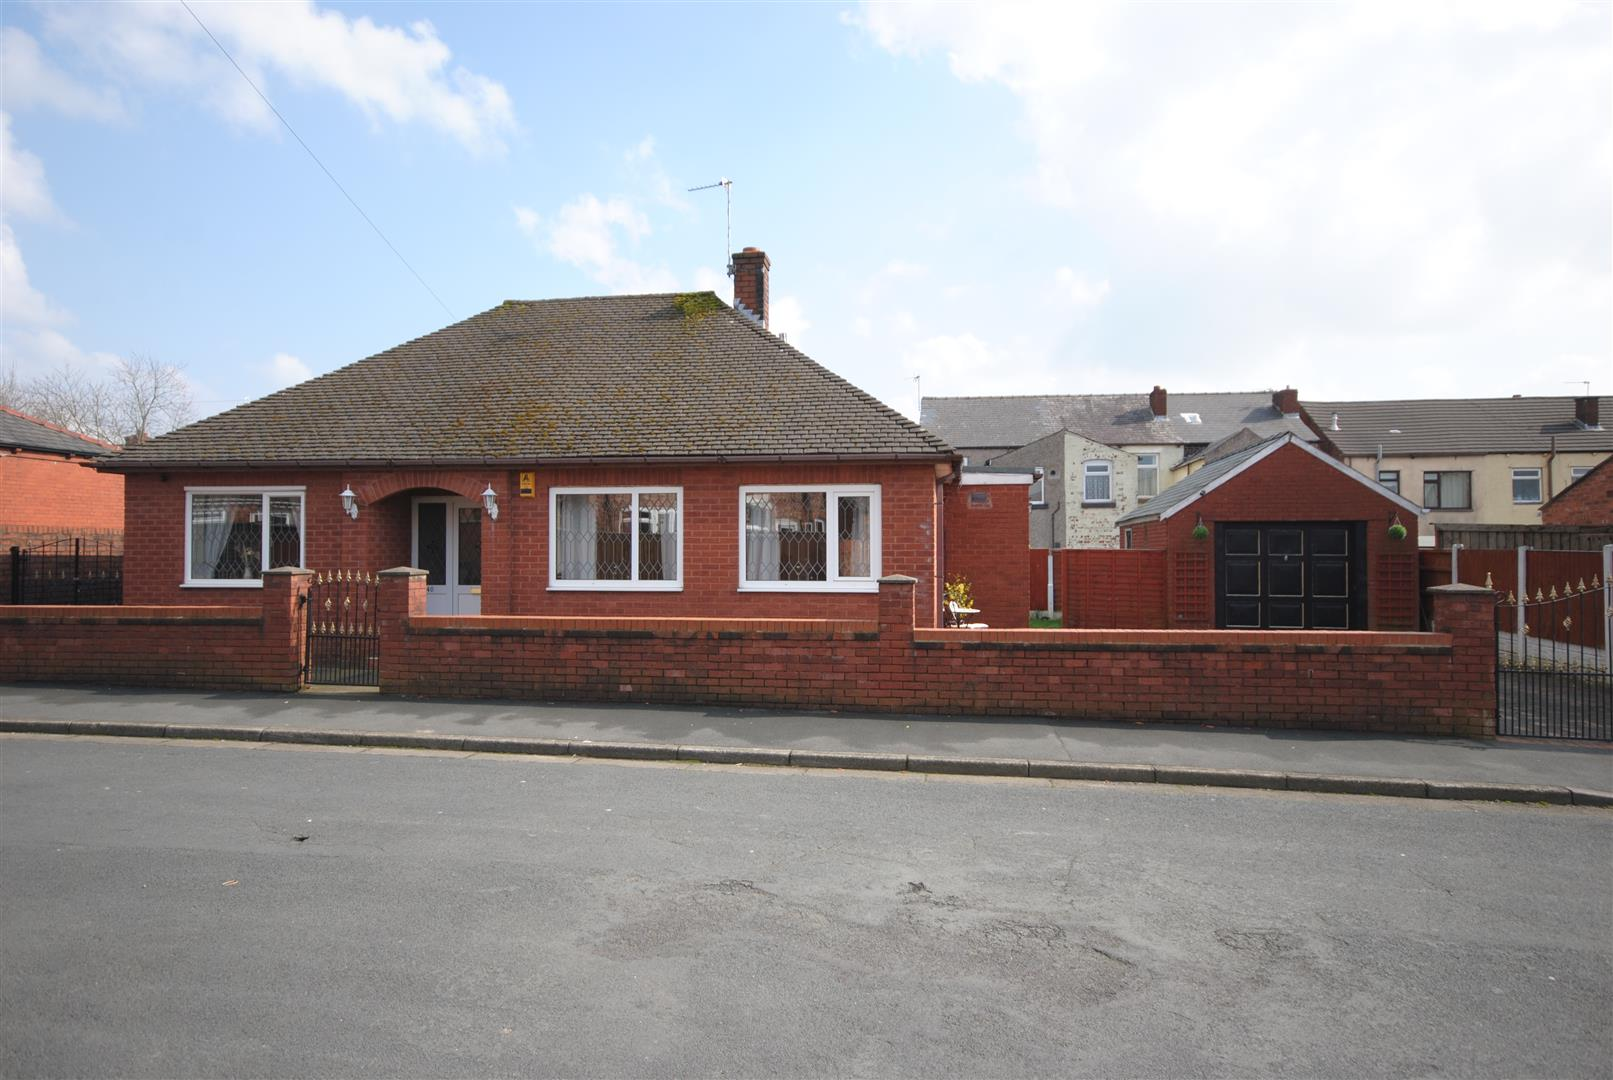 3 Bedrooms Detached Bungalow for sale in Delegarte Street, Lower Ince, Wigan